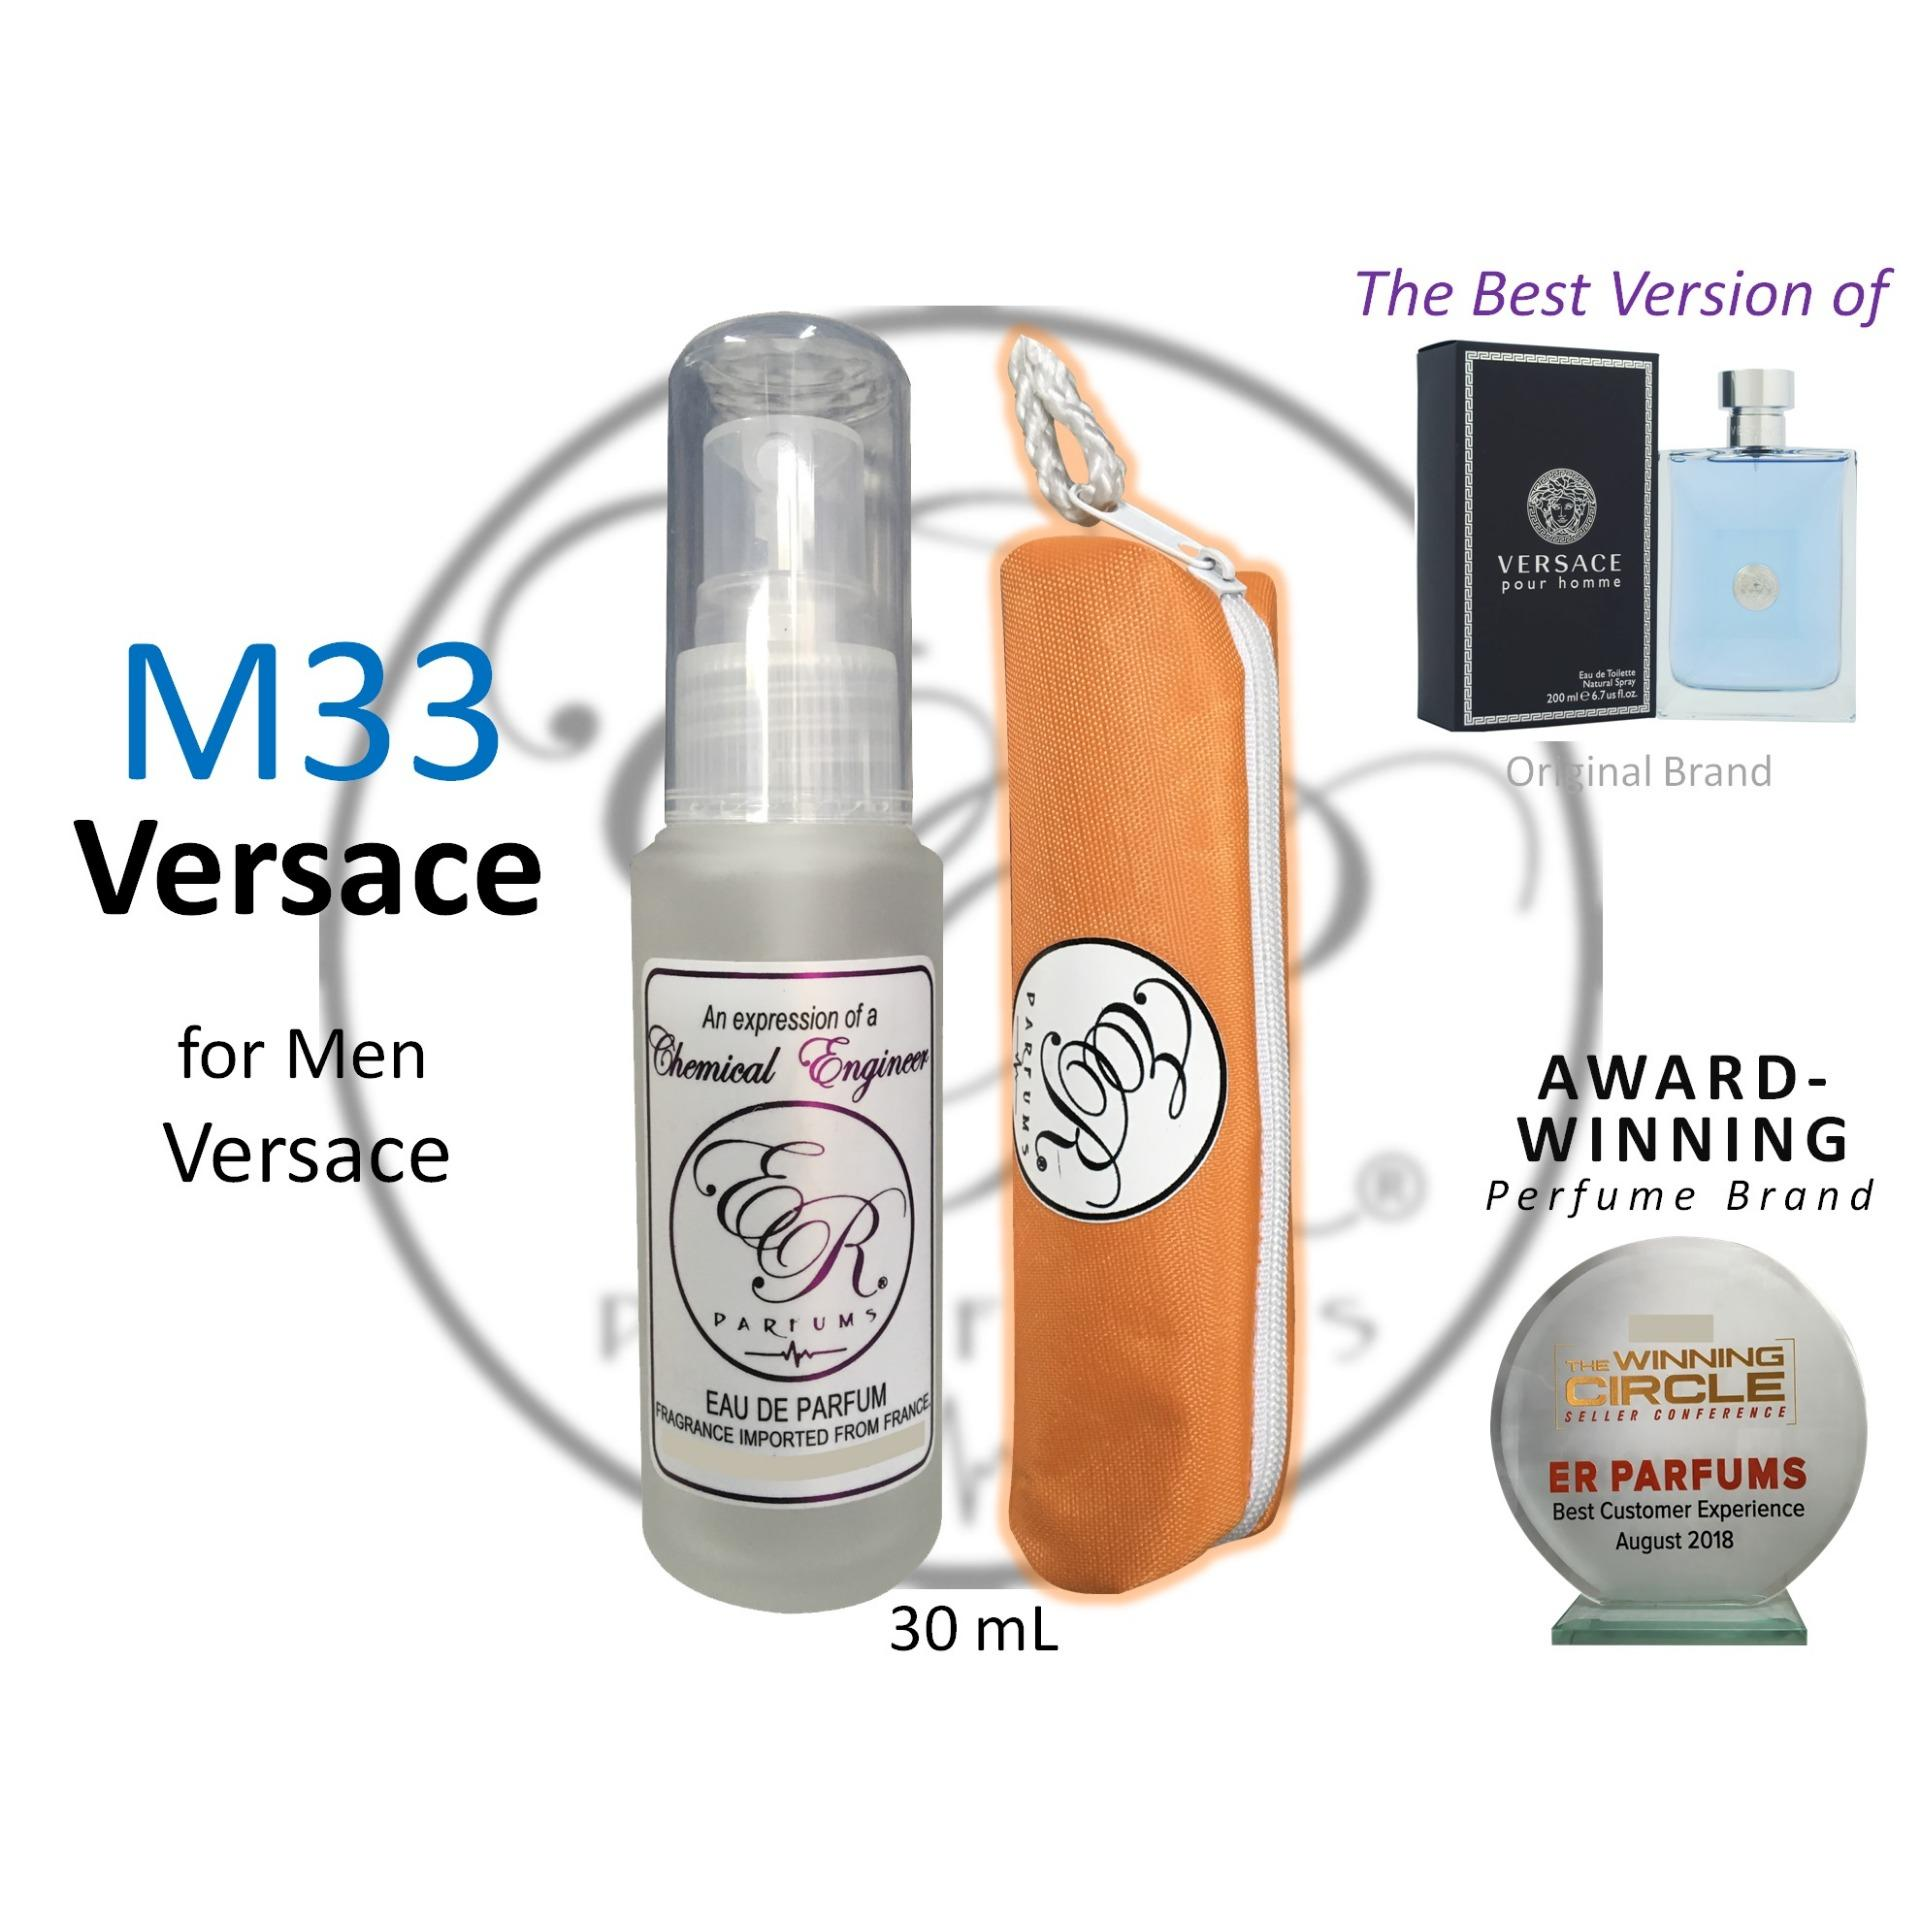 ER PARFUMS M33 Versace for Men by Versace 1 piece 30 mL perfume with free pouch - BEST VERSION